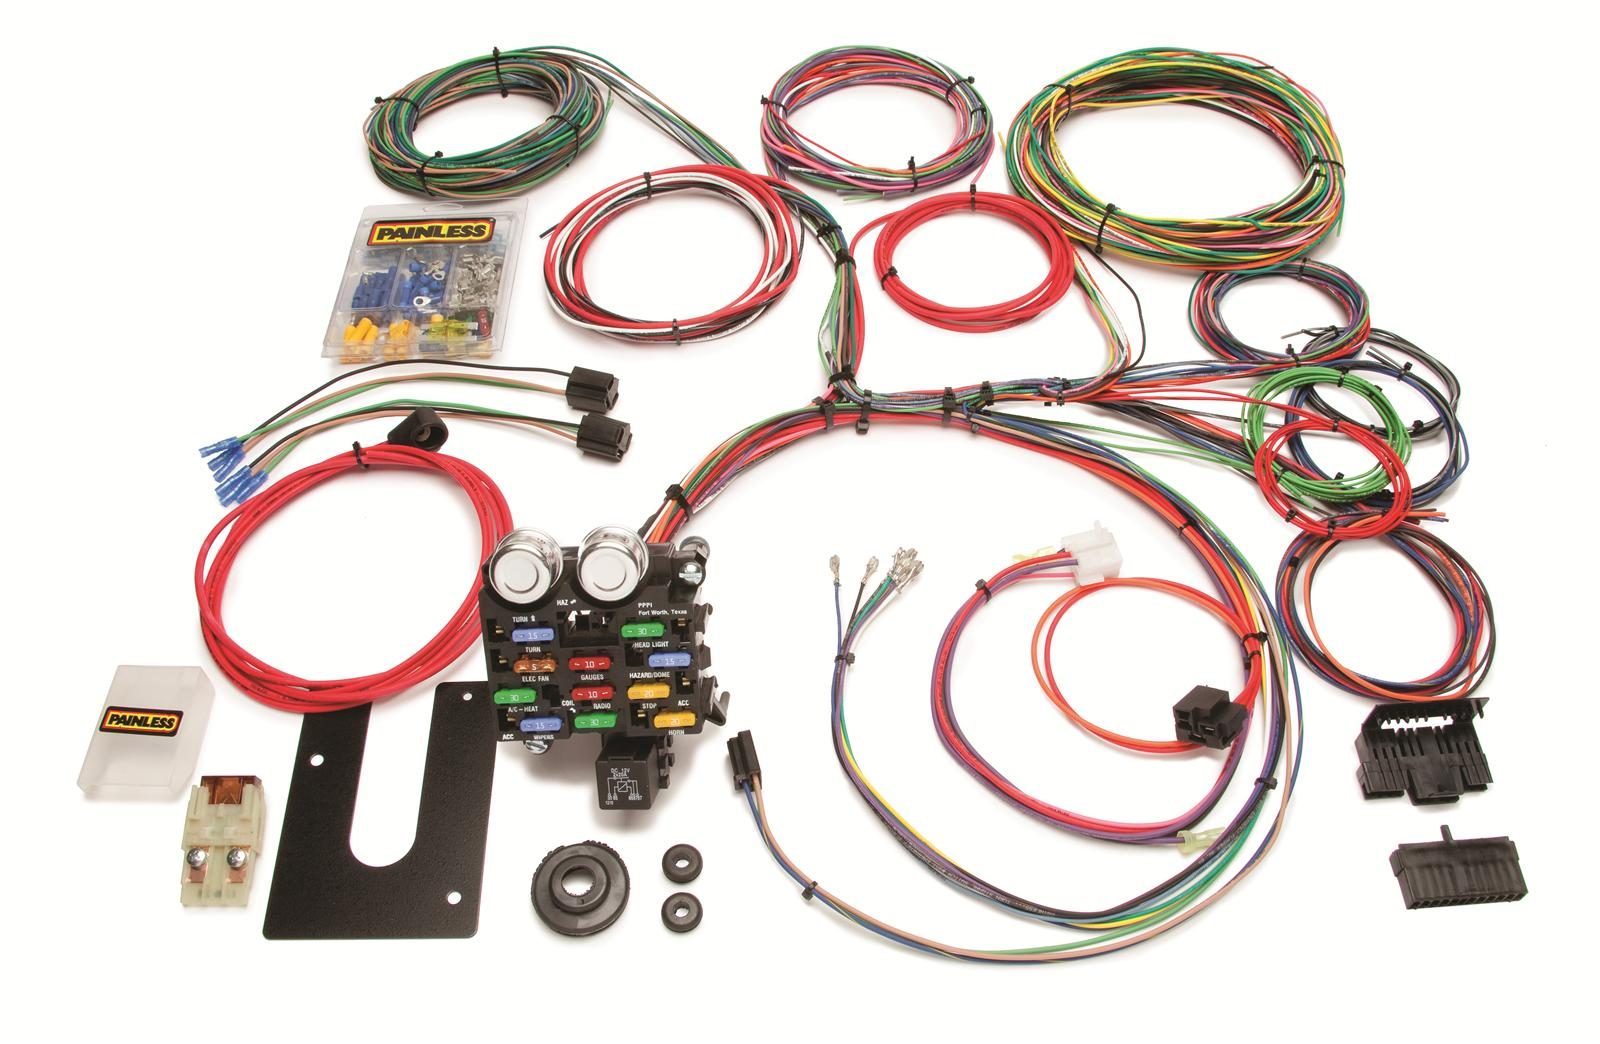 painless performance 21-circuit universal truck harnesses 10103 - free  shipping on orders over $99 at summit racing